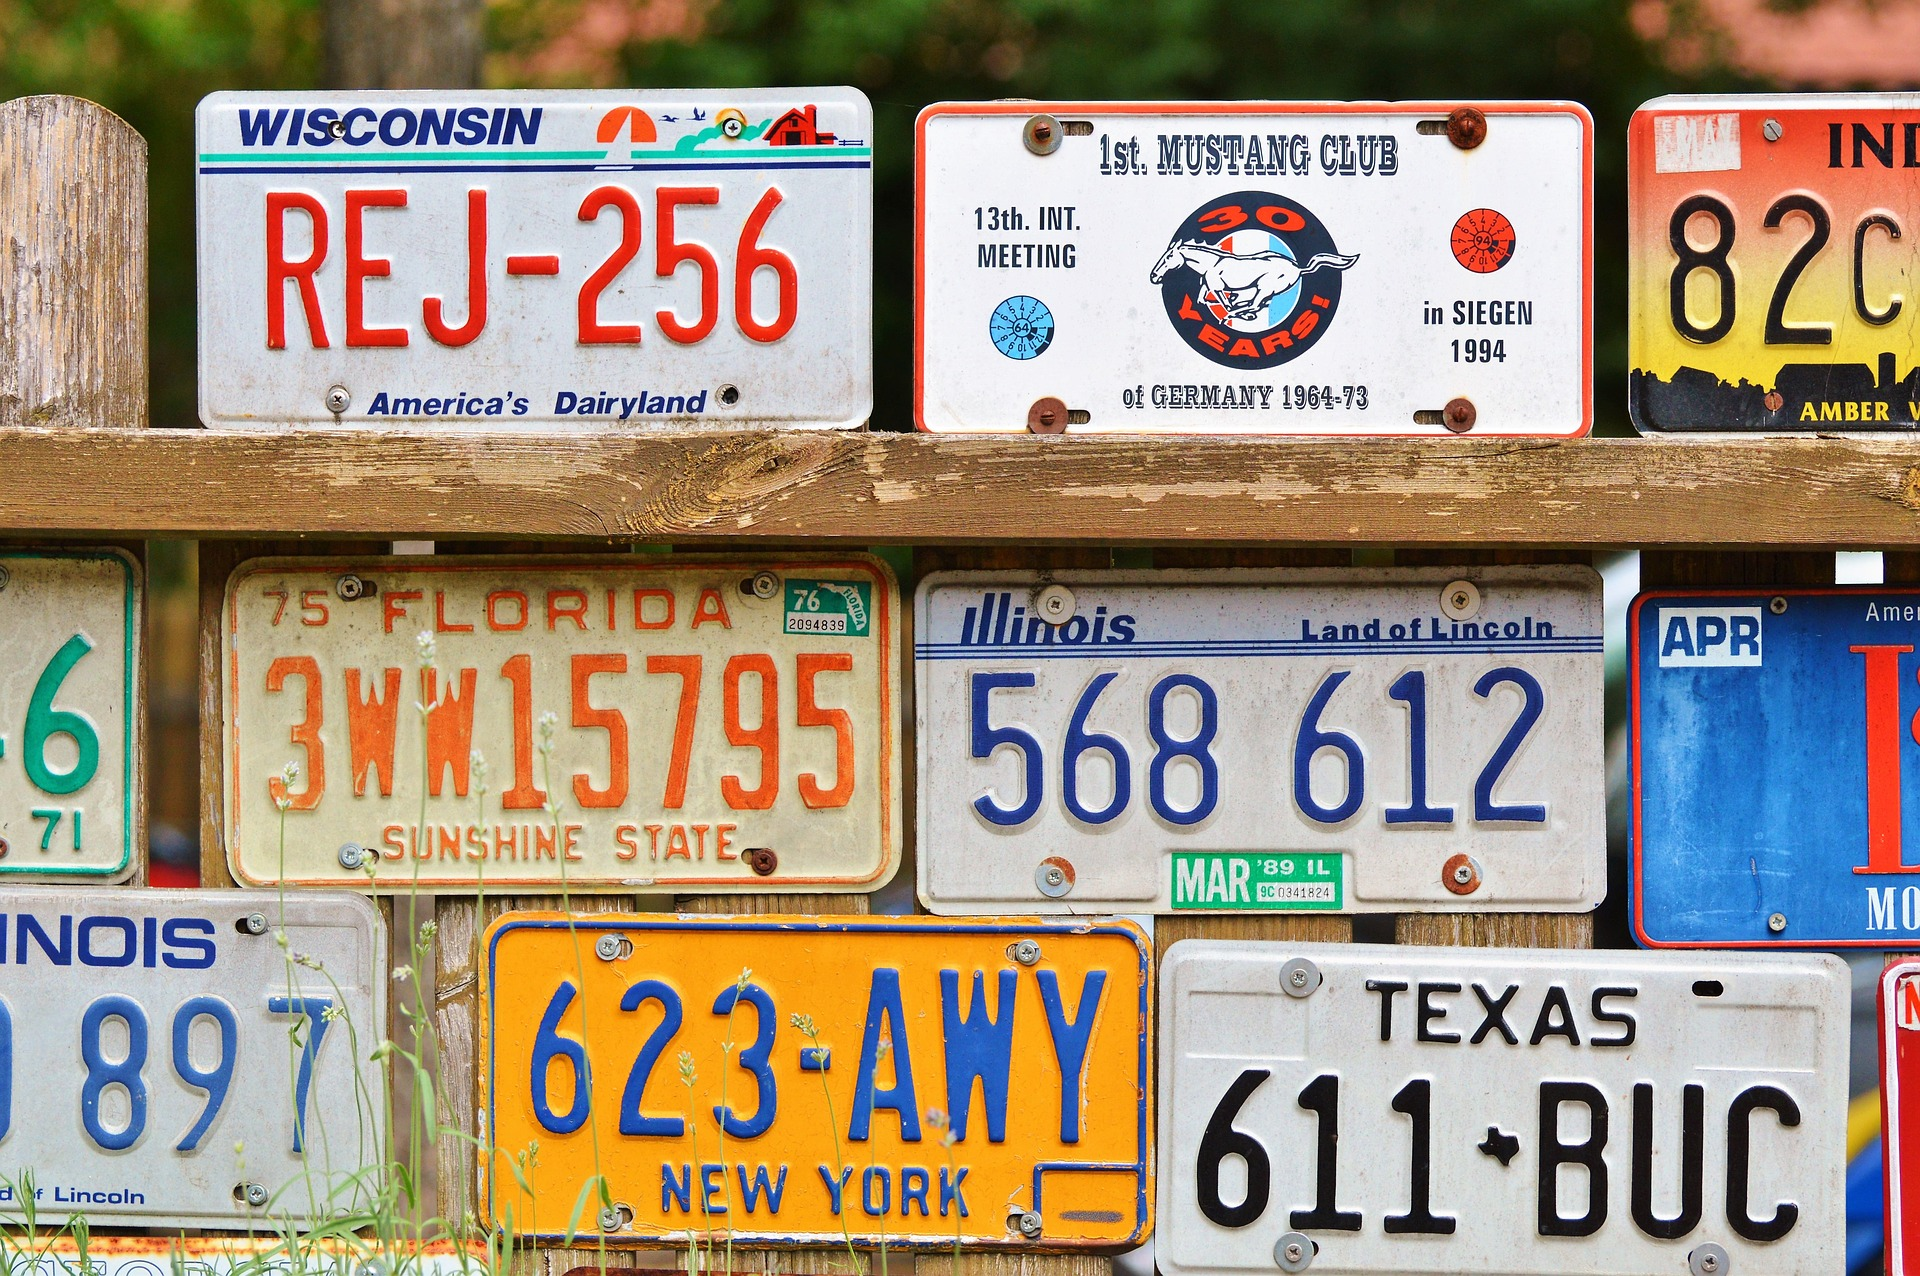 License Plate Laws in the US